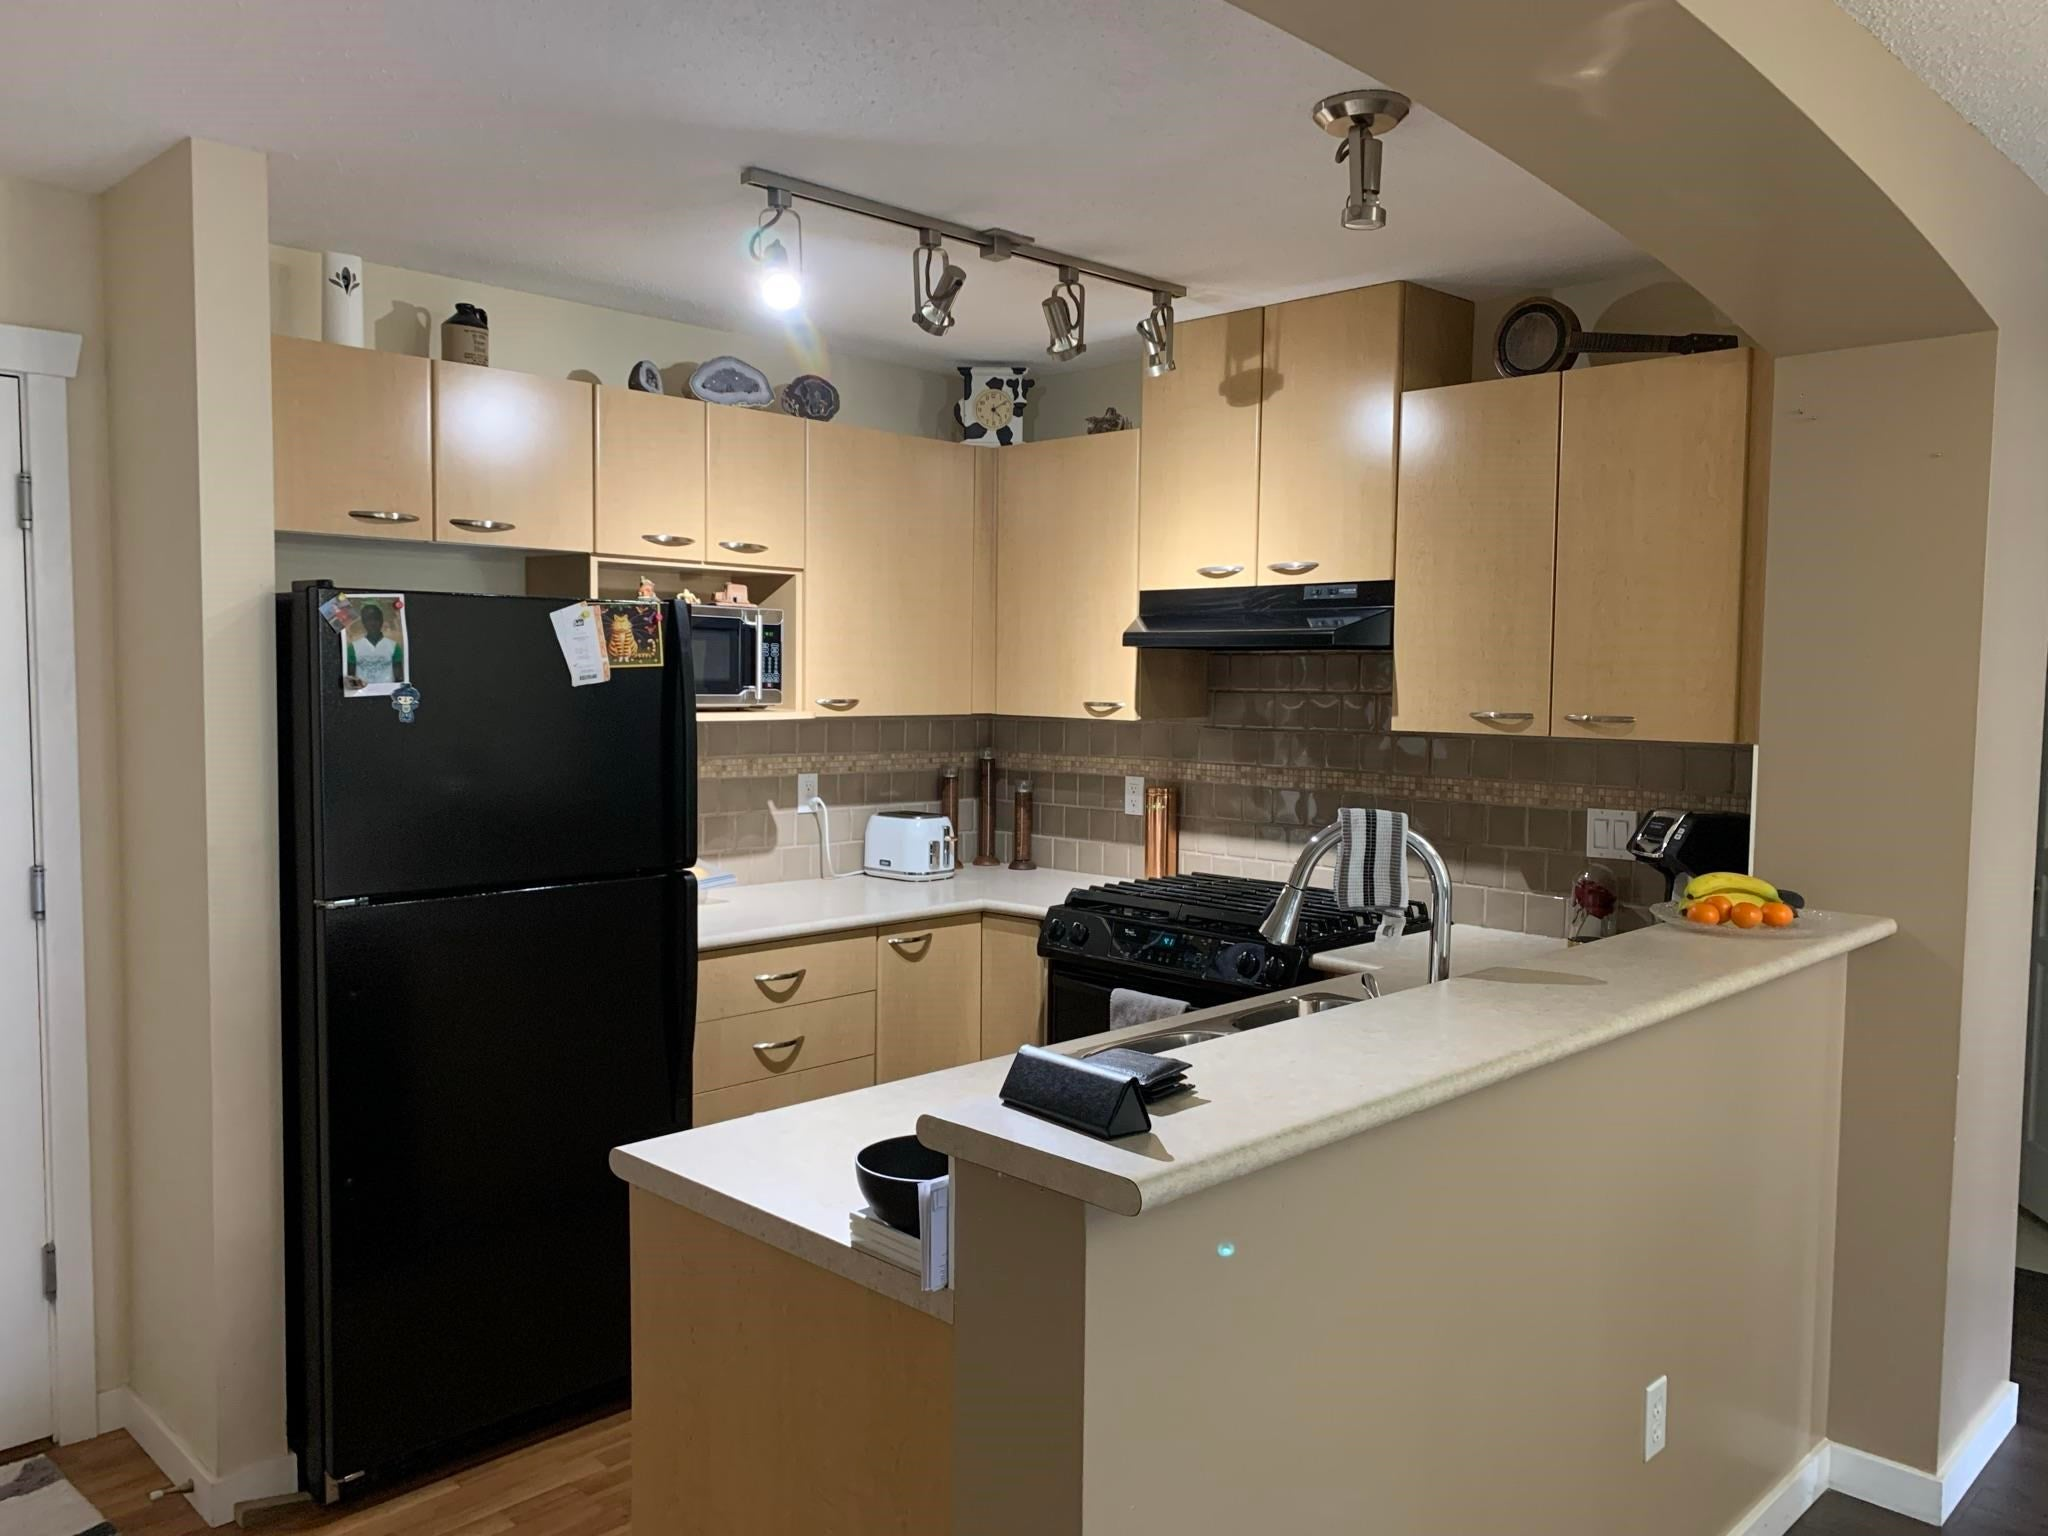 314 2958 SILVER SPRINGS BOULEVARD - Westwood Plateau Apartment/Condo for sale, 2 Bedrooms (R2604136) - #9